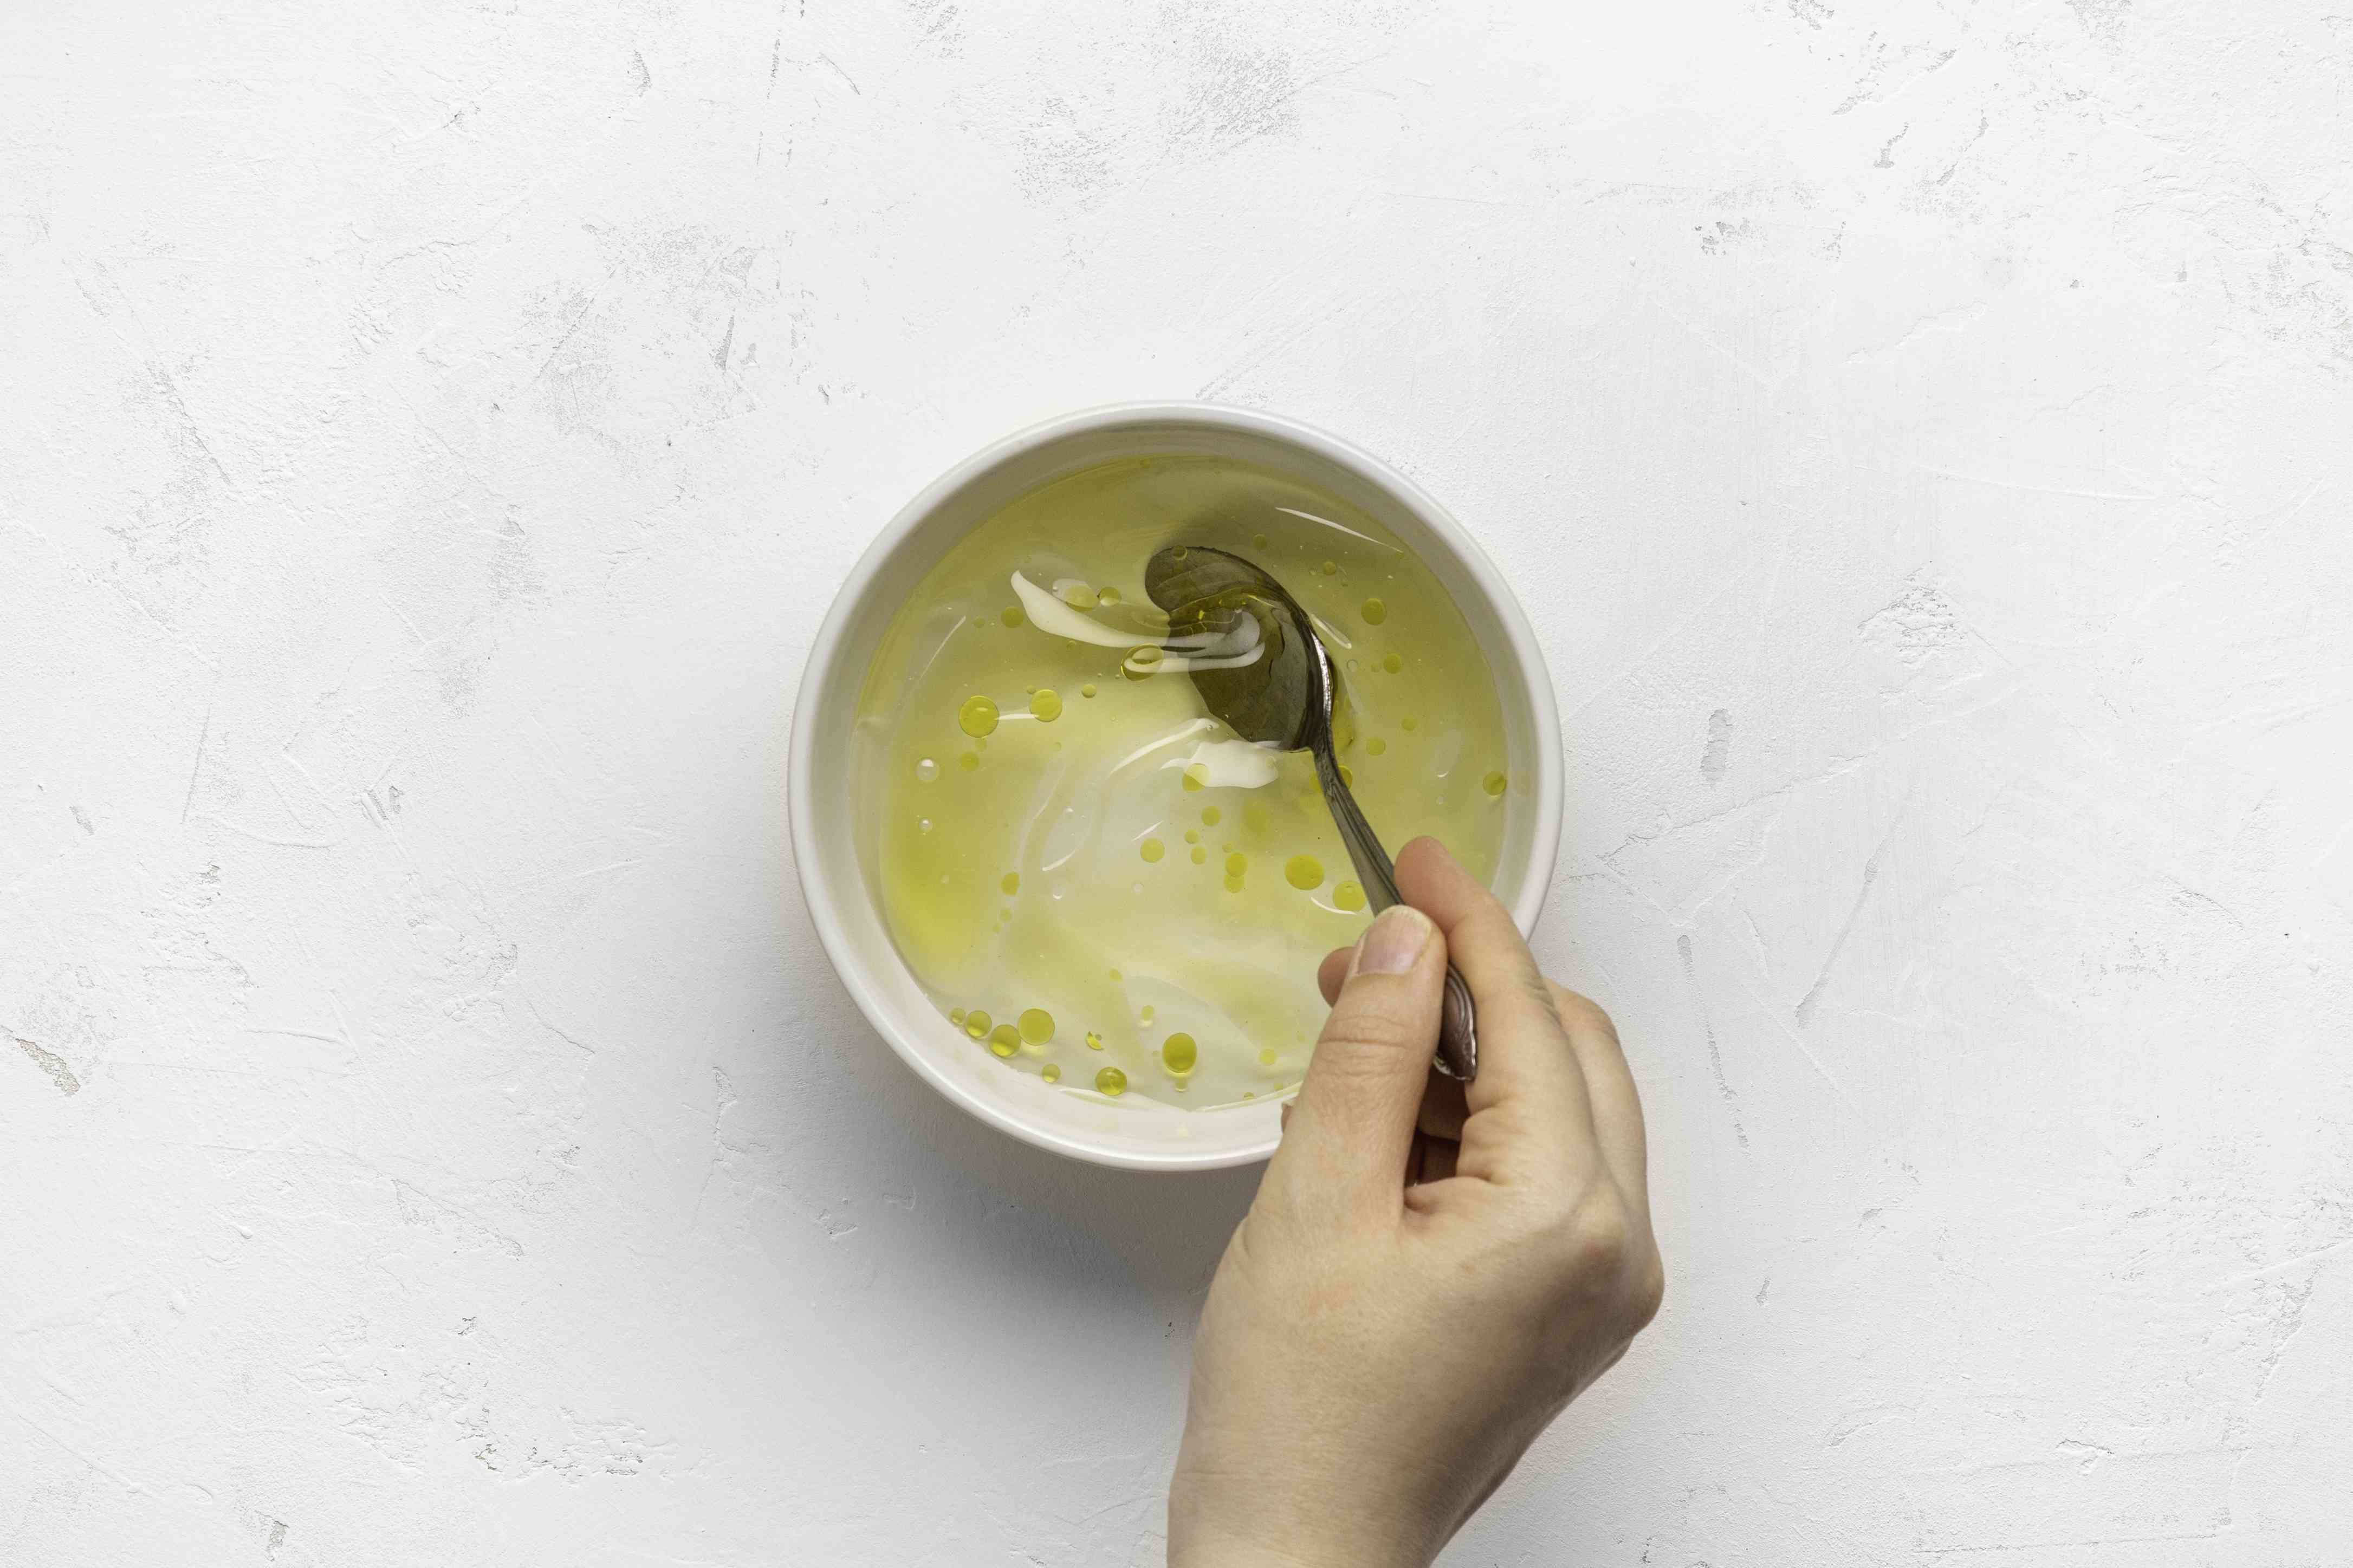 Olive oil and warm water together in a bowl